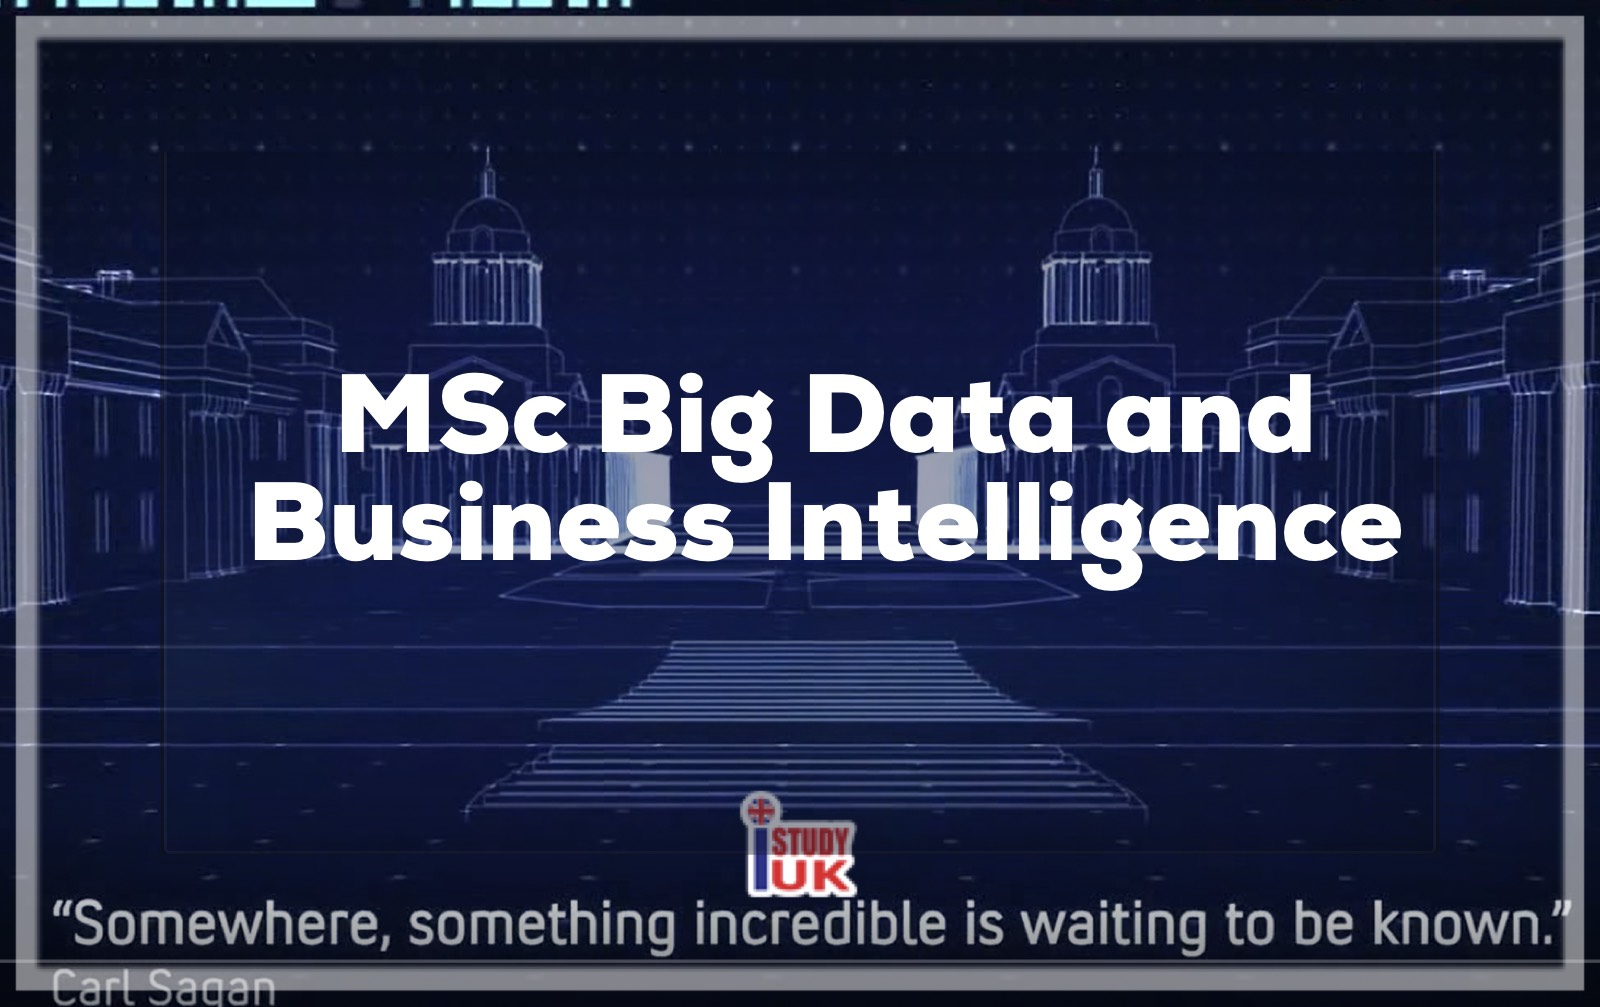 big data สมัครเรียนต่อโทลอนดอน big-data-and-business-intelligence-msc-university-of-greenwich-london-uk-masters